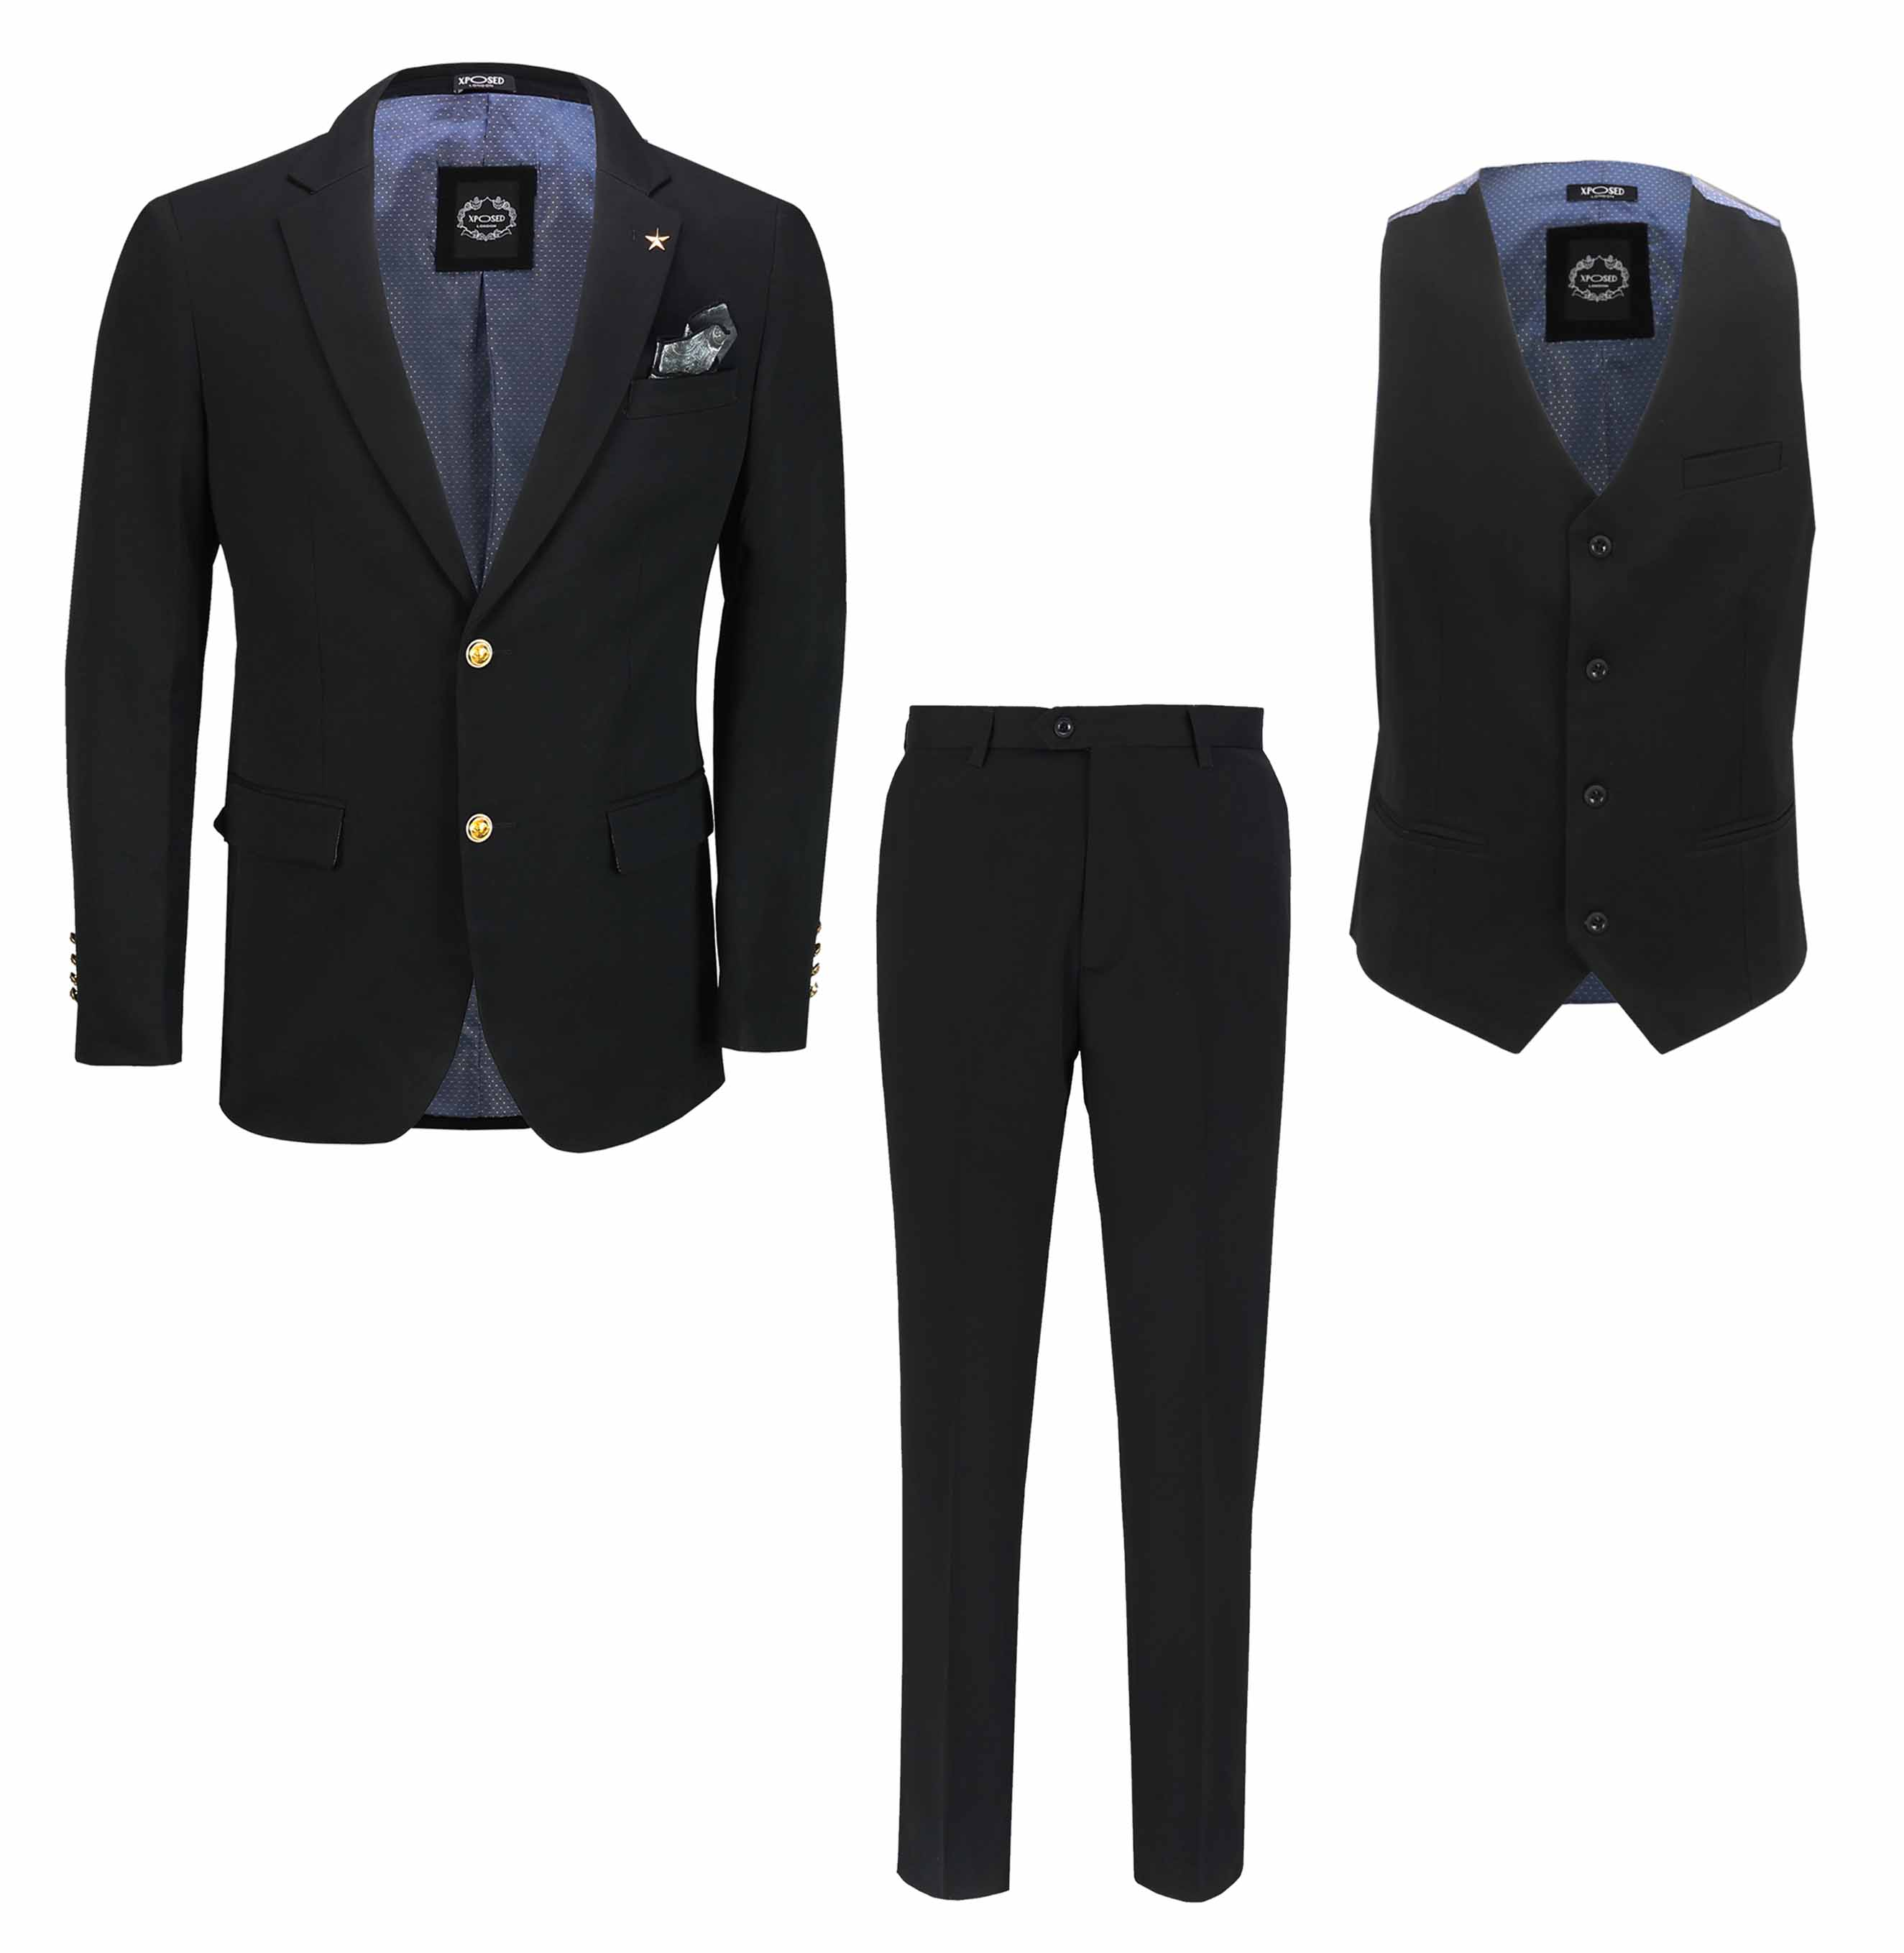 Details about Mens Black Blazer Gold Buttons Classic Smart Casual Tailored  Fit Suit Jacket